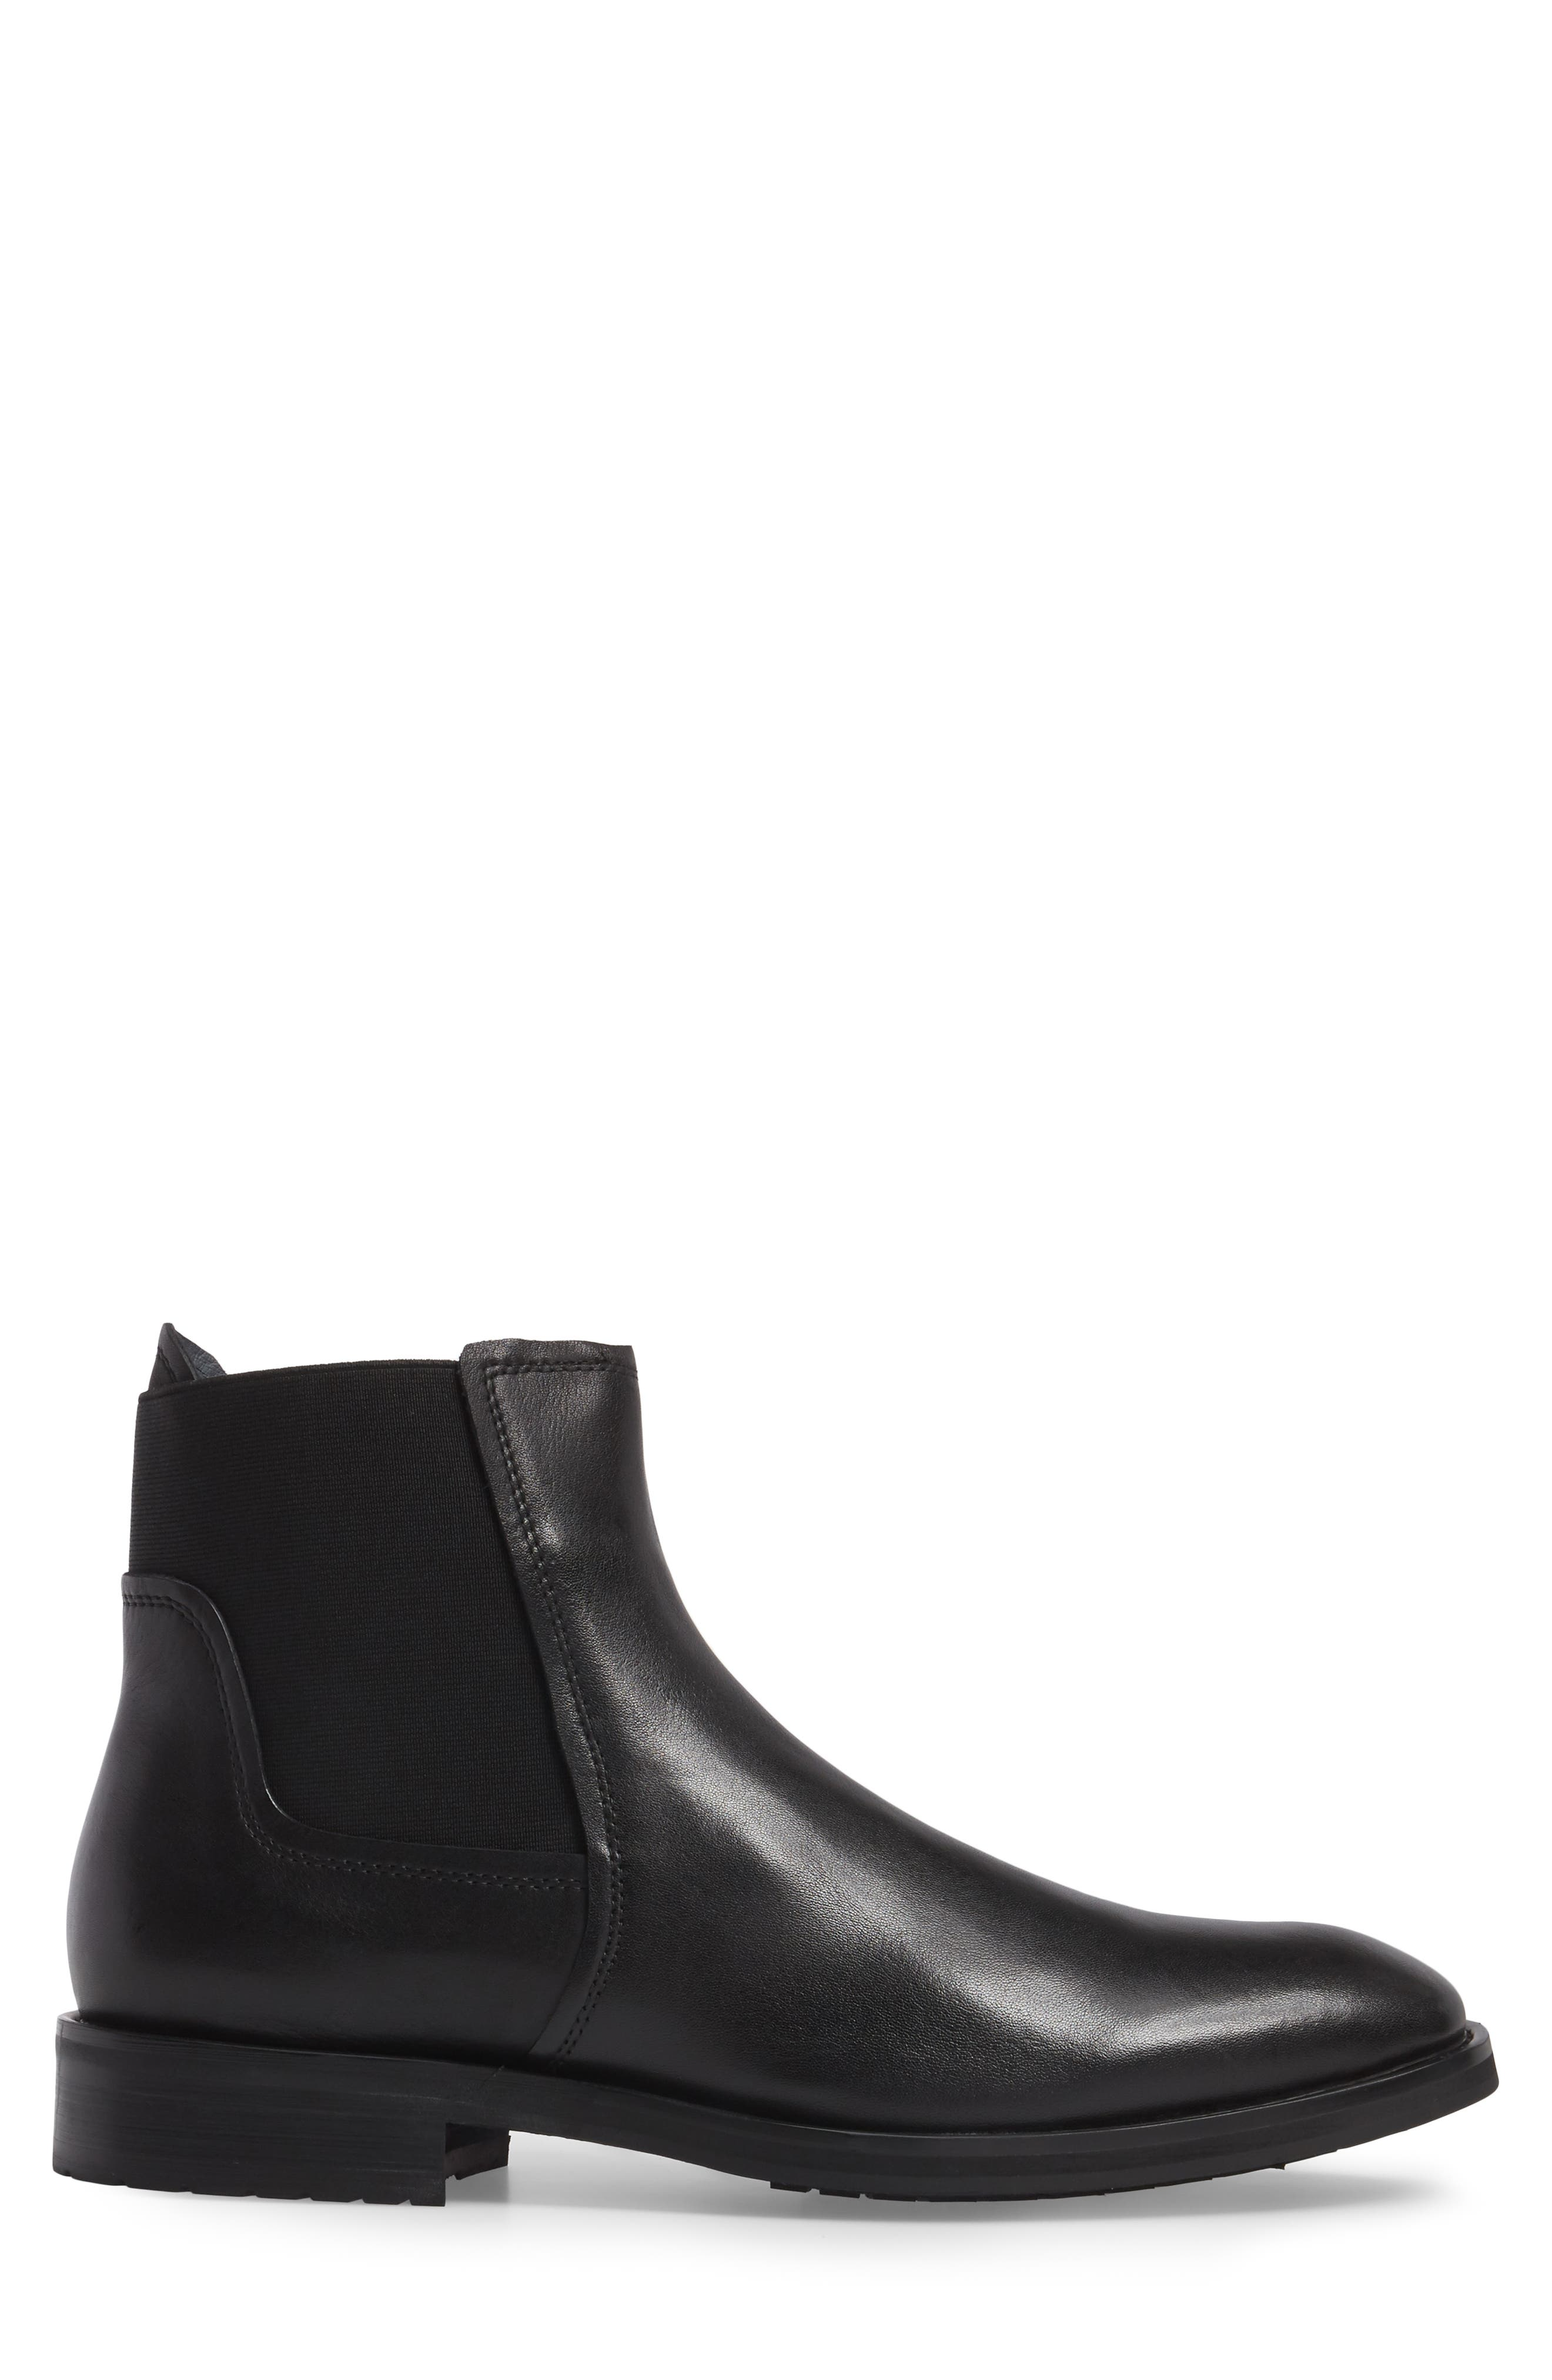 Belmont Chelsea Boot,                             Alternate thumbnail 3, color,                             001